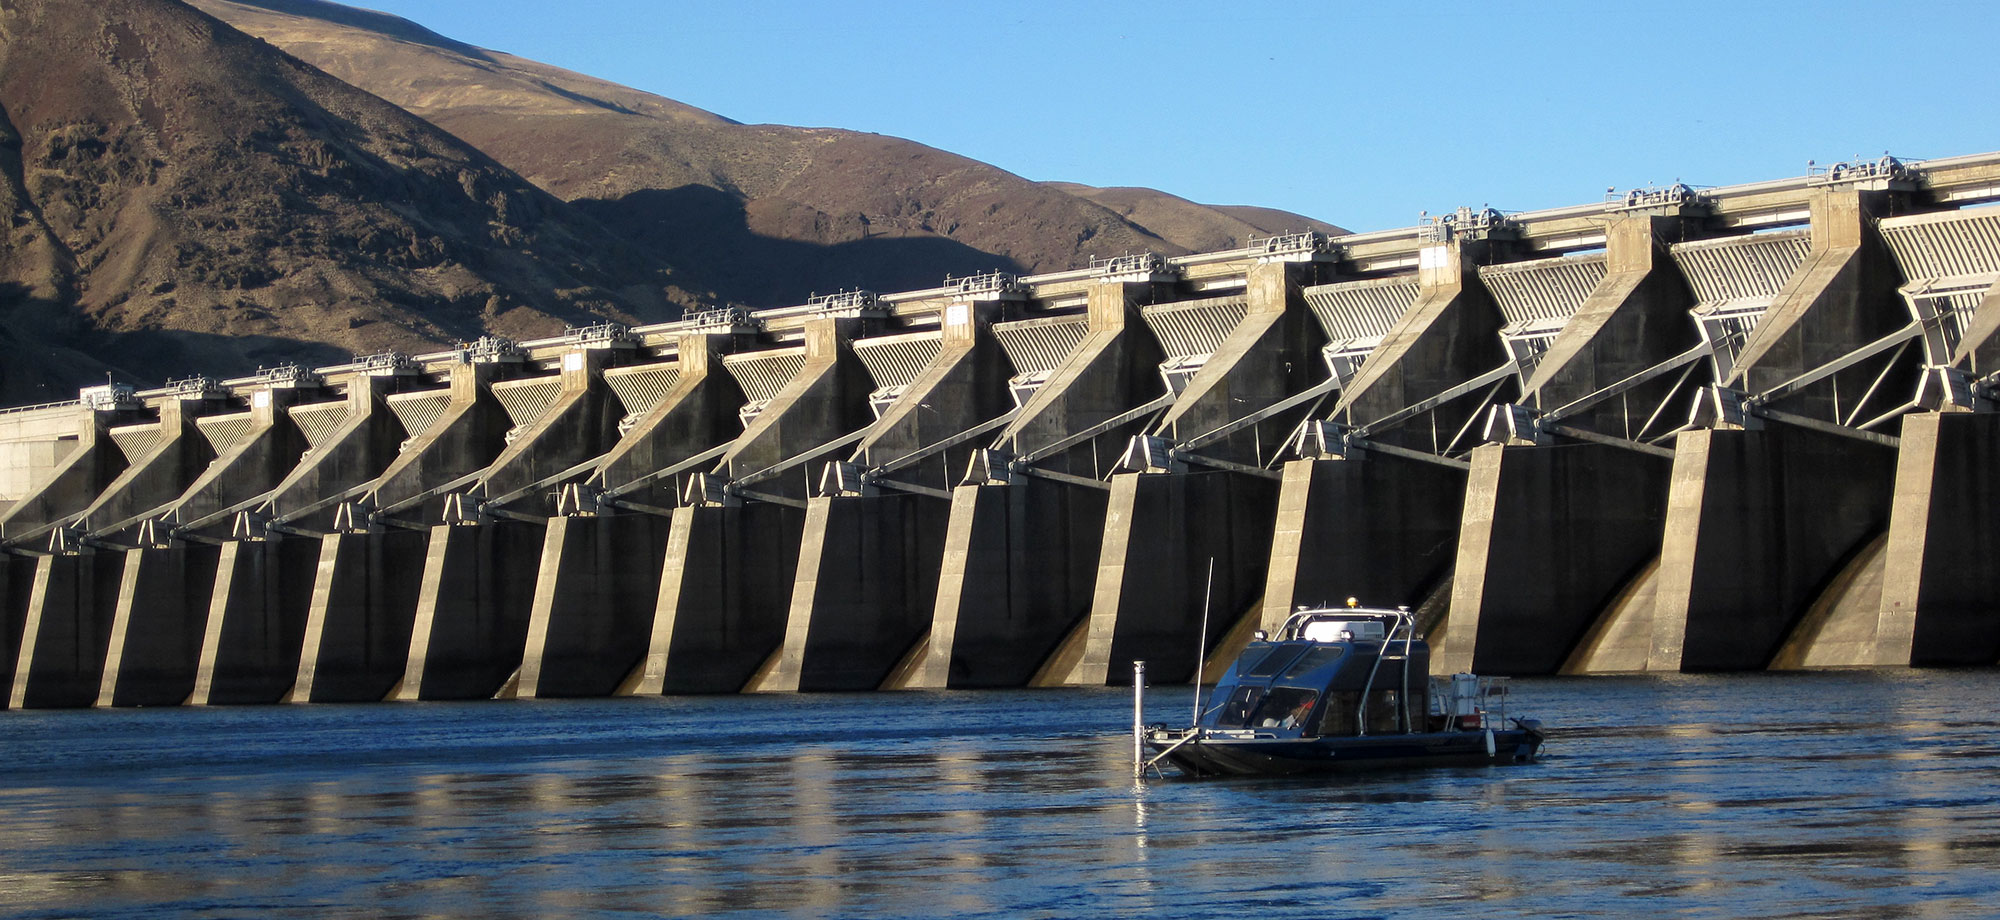 home tetra tech achieving enr s 1 ranking in dams and reservoirs